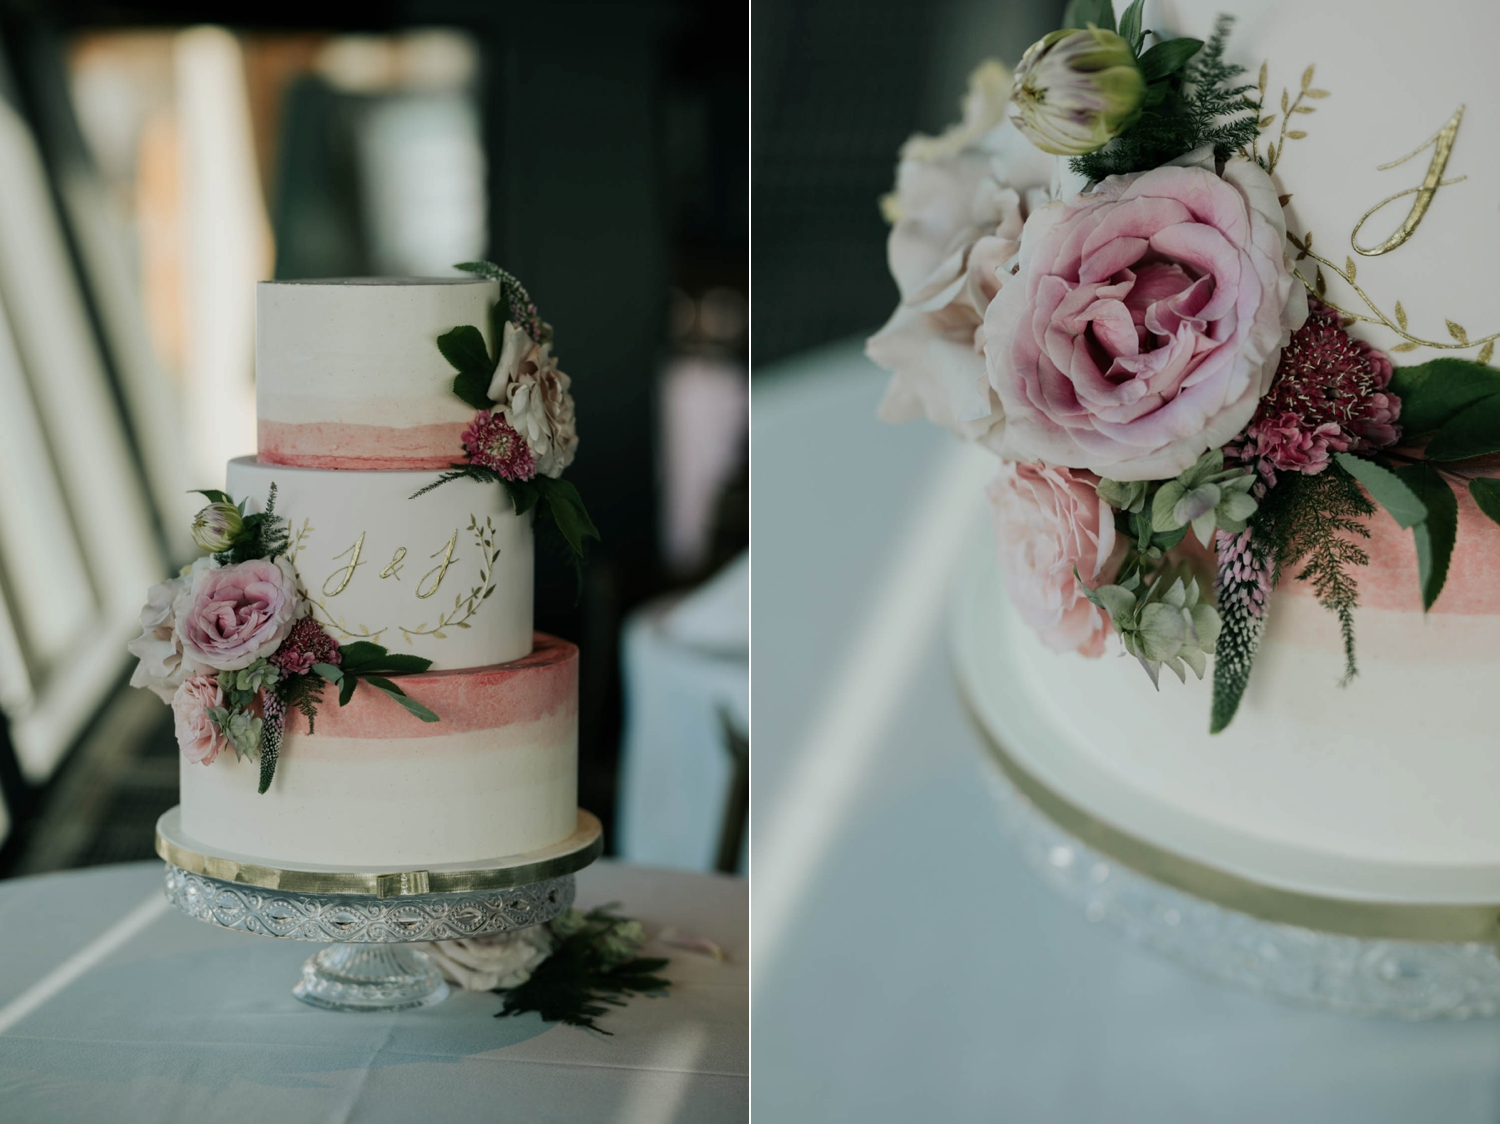 Trending Wedding Cake Ideas Pink Roses Gold Initials